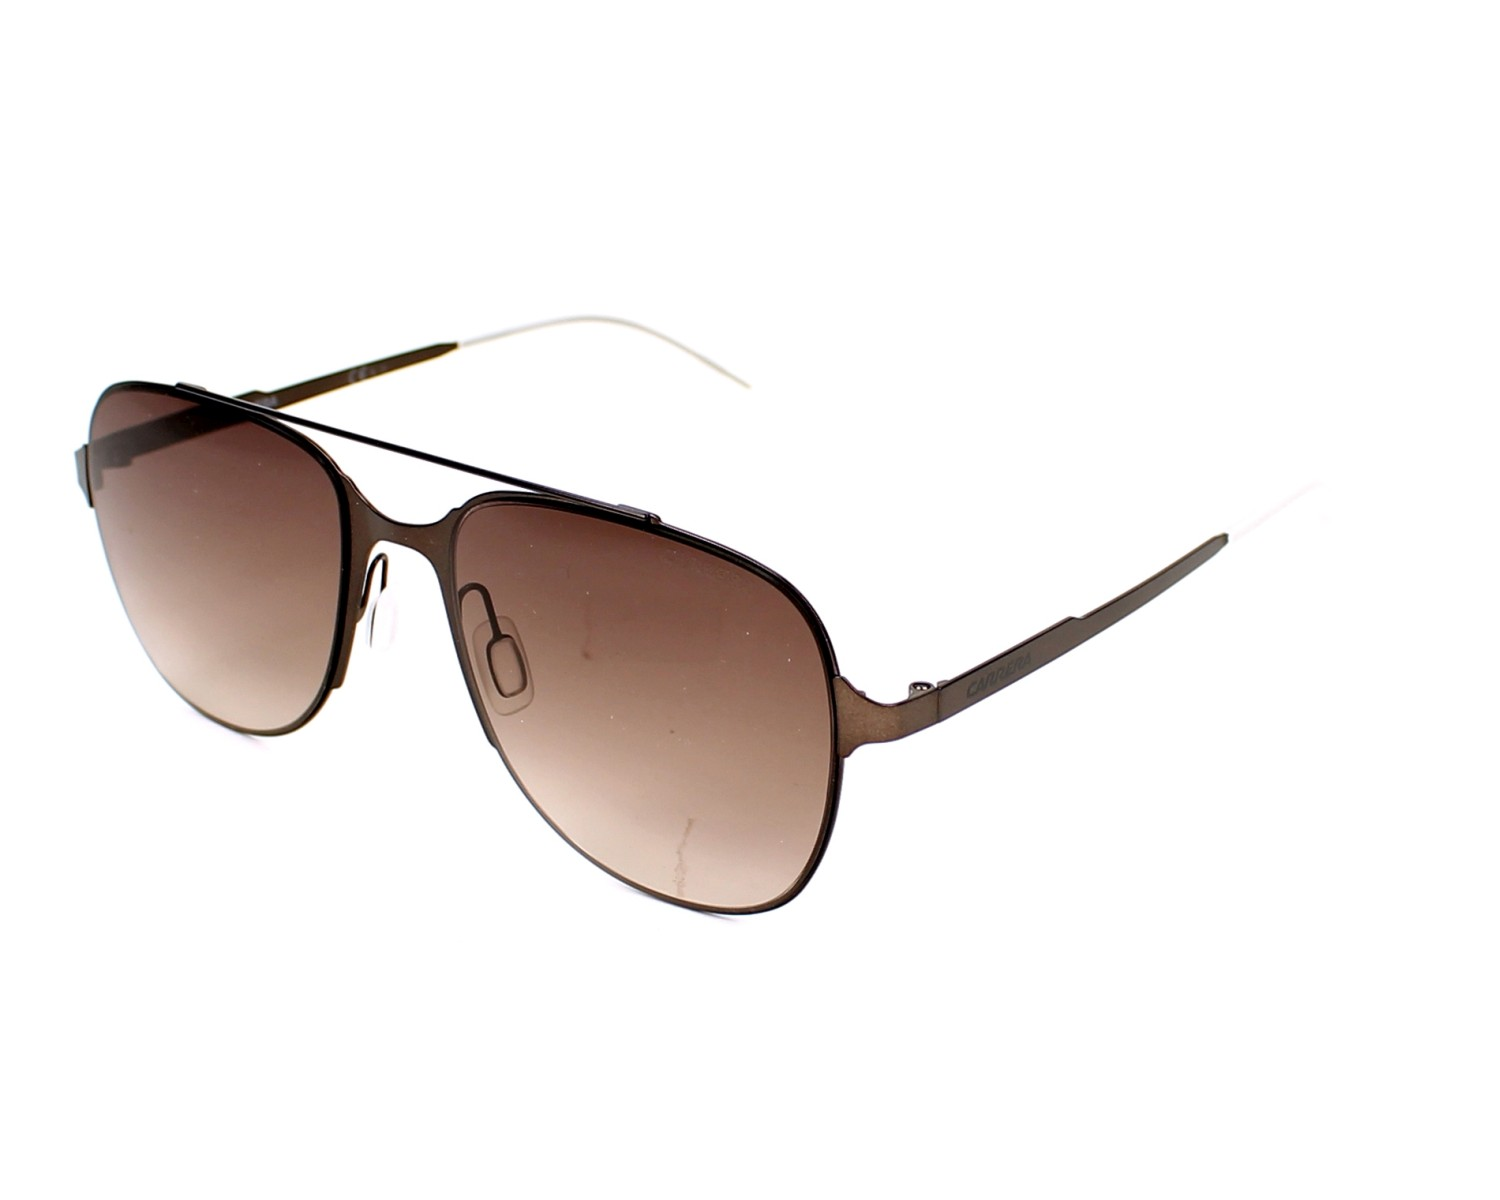 Carrera Sunglasses Brown  carrera sunglasses maverick carrera 114 s firj6 55 visionet